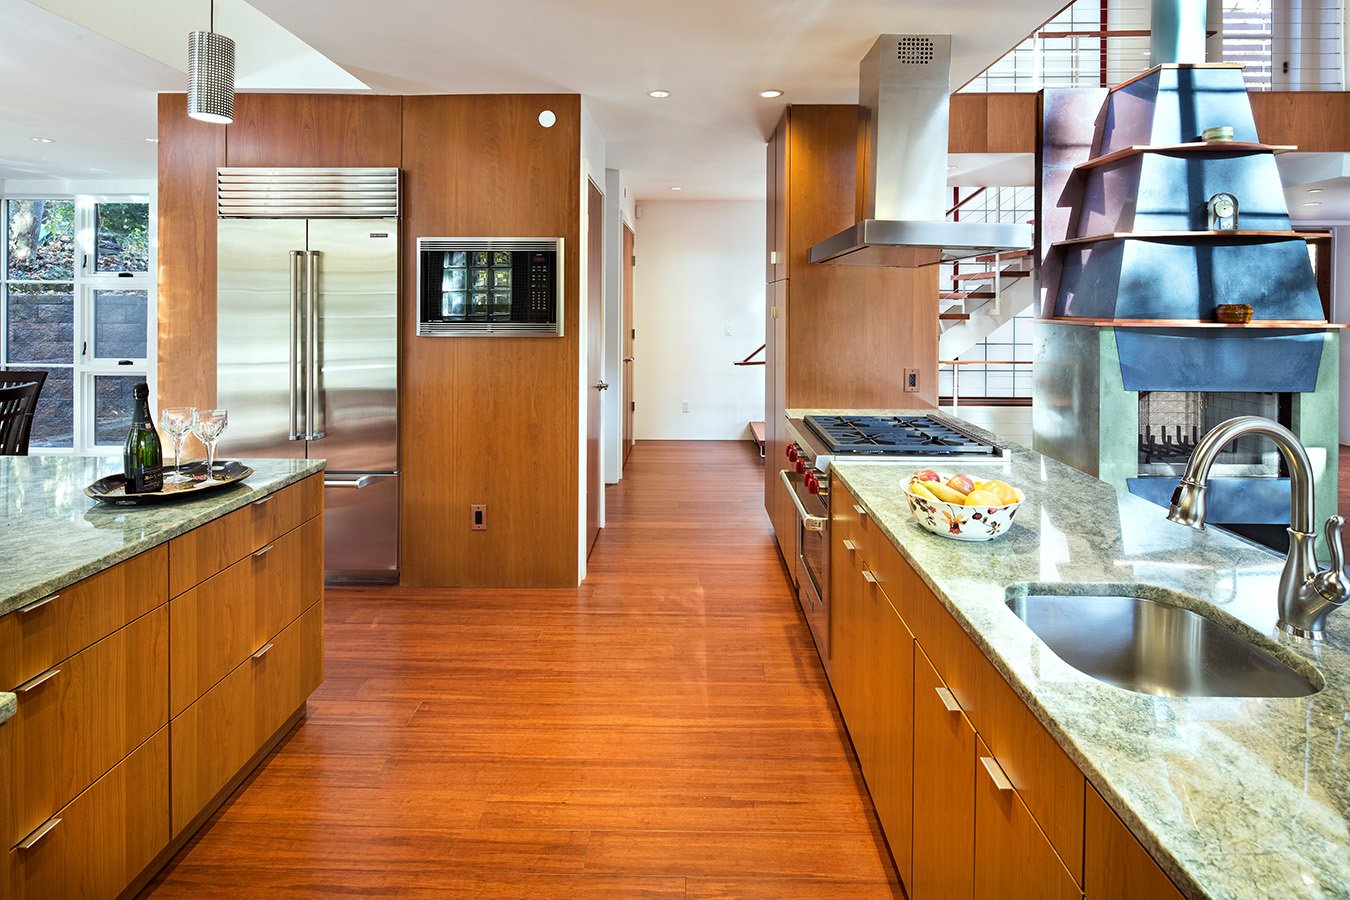 Kitchen, Refrigerator, Cooktops, Range, Range Hood, Microwave, Dishwasher, Granite, Wood, Medium Hardwood, Mosaic Tile, Ceiling, Pendant, Undermount, and Concrete Kitchen  Best Kitchen Range Hood Wood Pendant Mosaic Tile Photos from Home for Sale: Takoma Park House